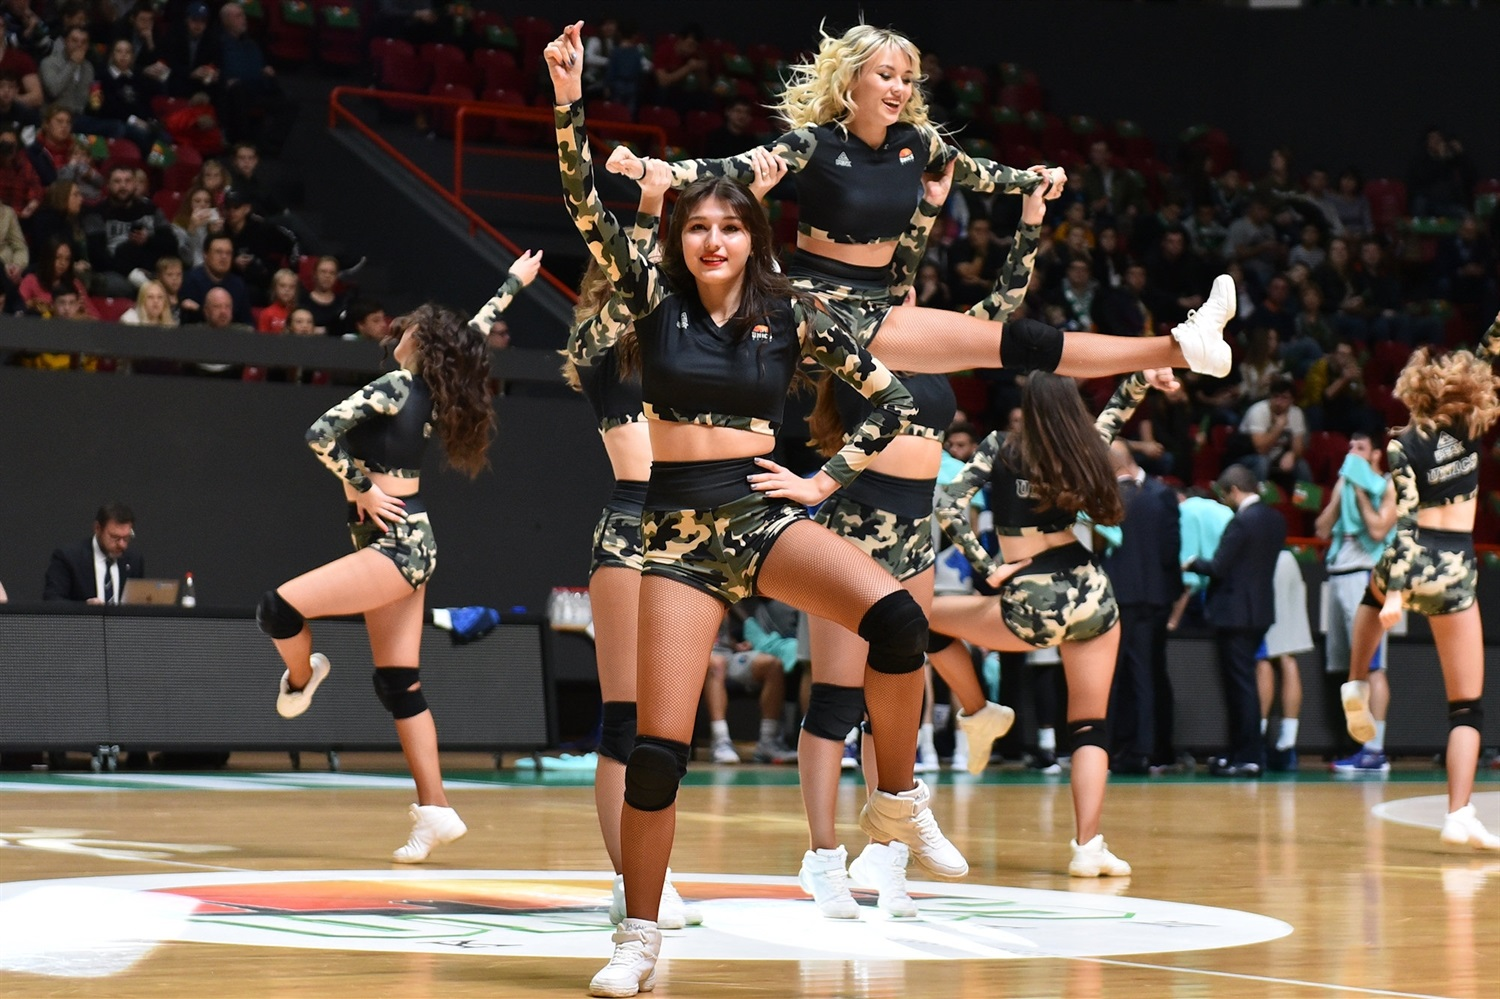 Cheerleaders - UNICS Kazan (photo UNICS) - EC19